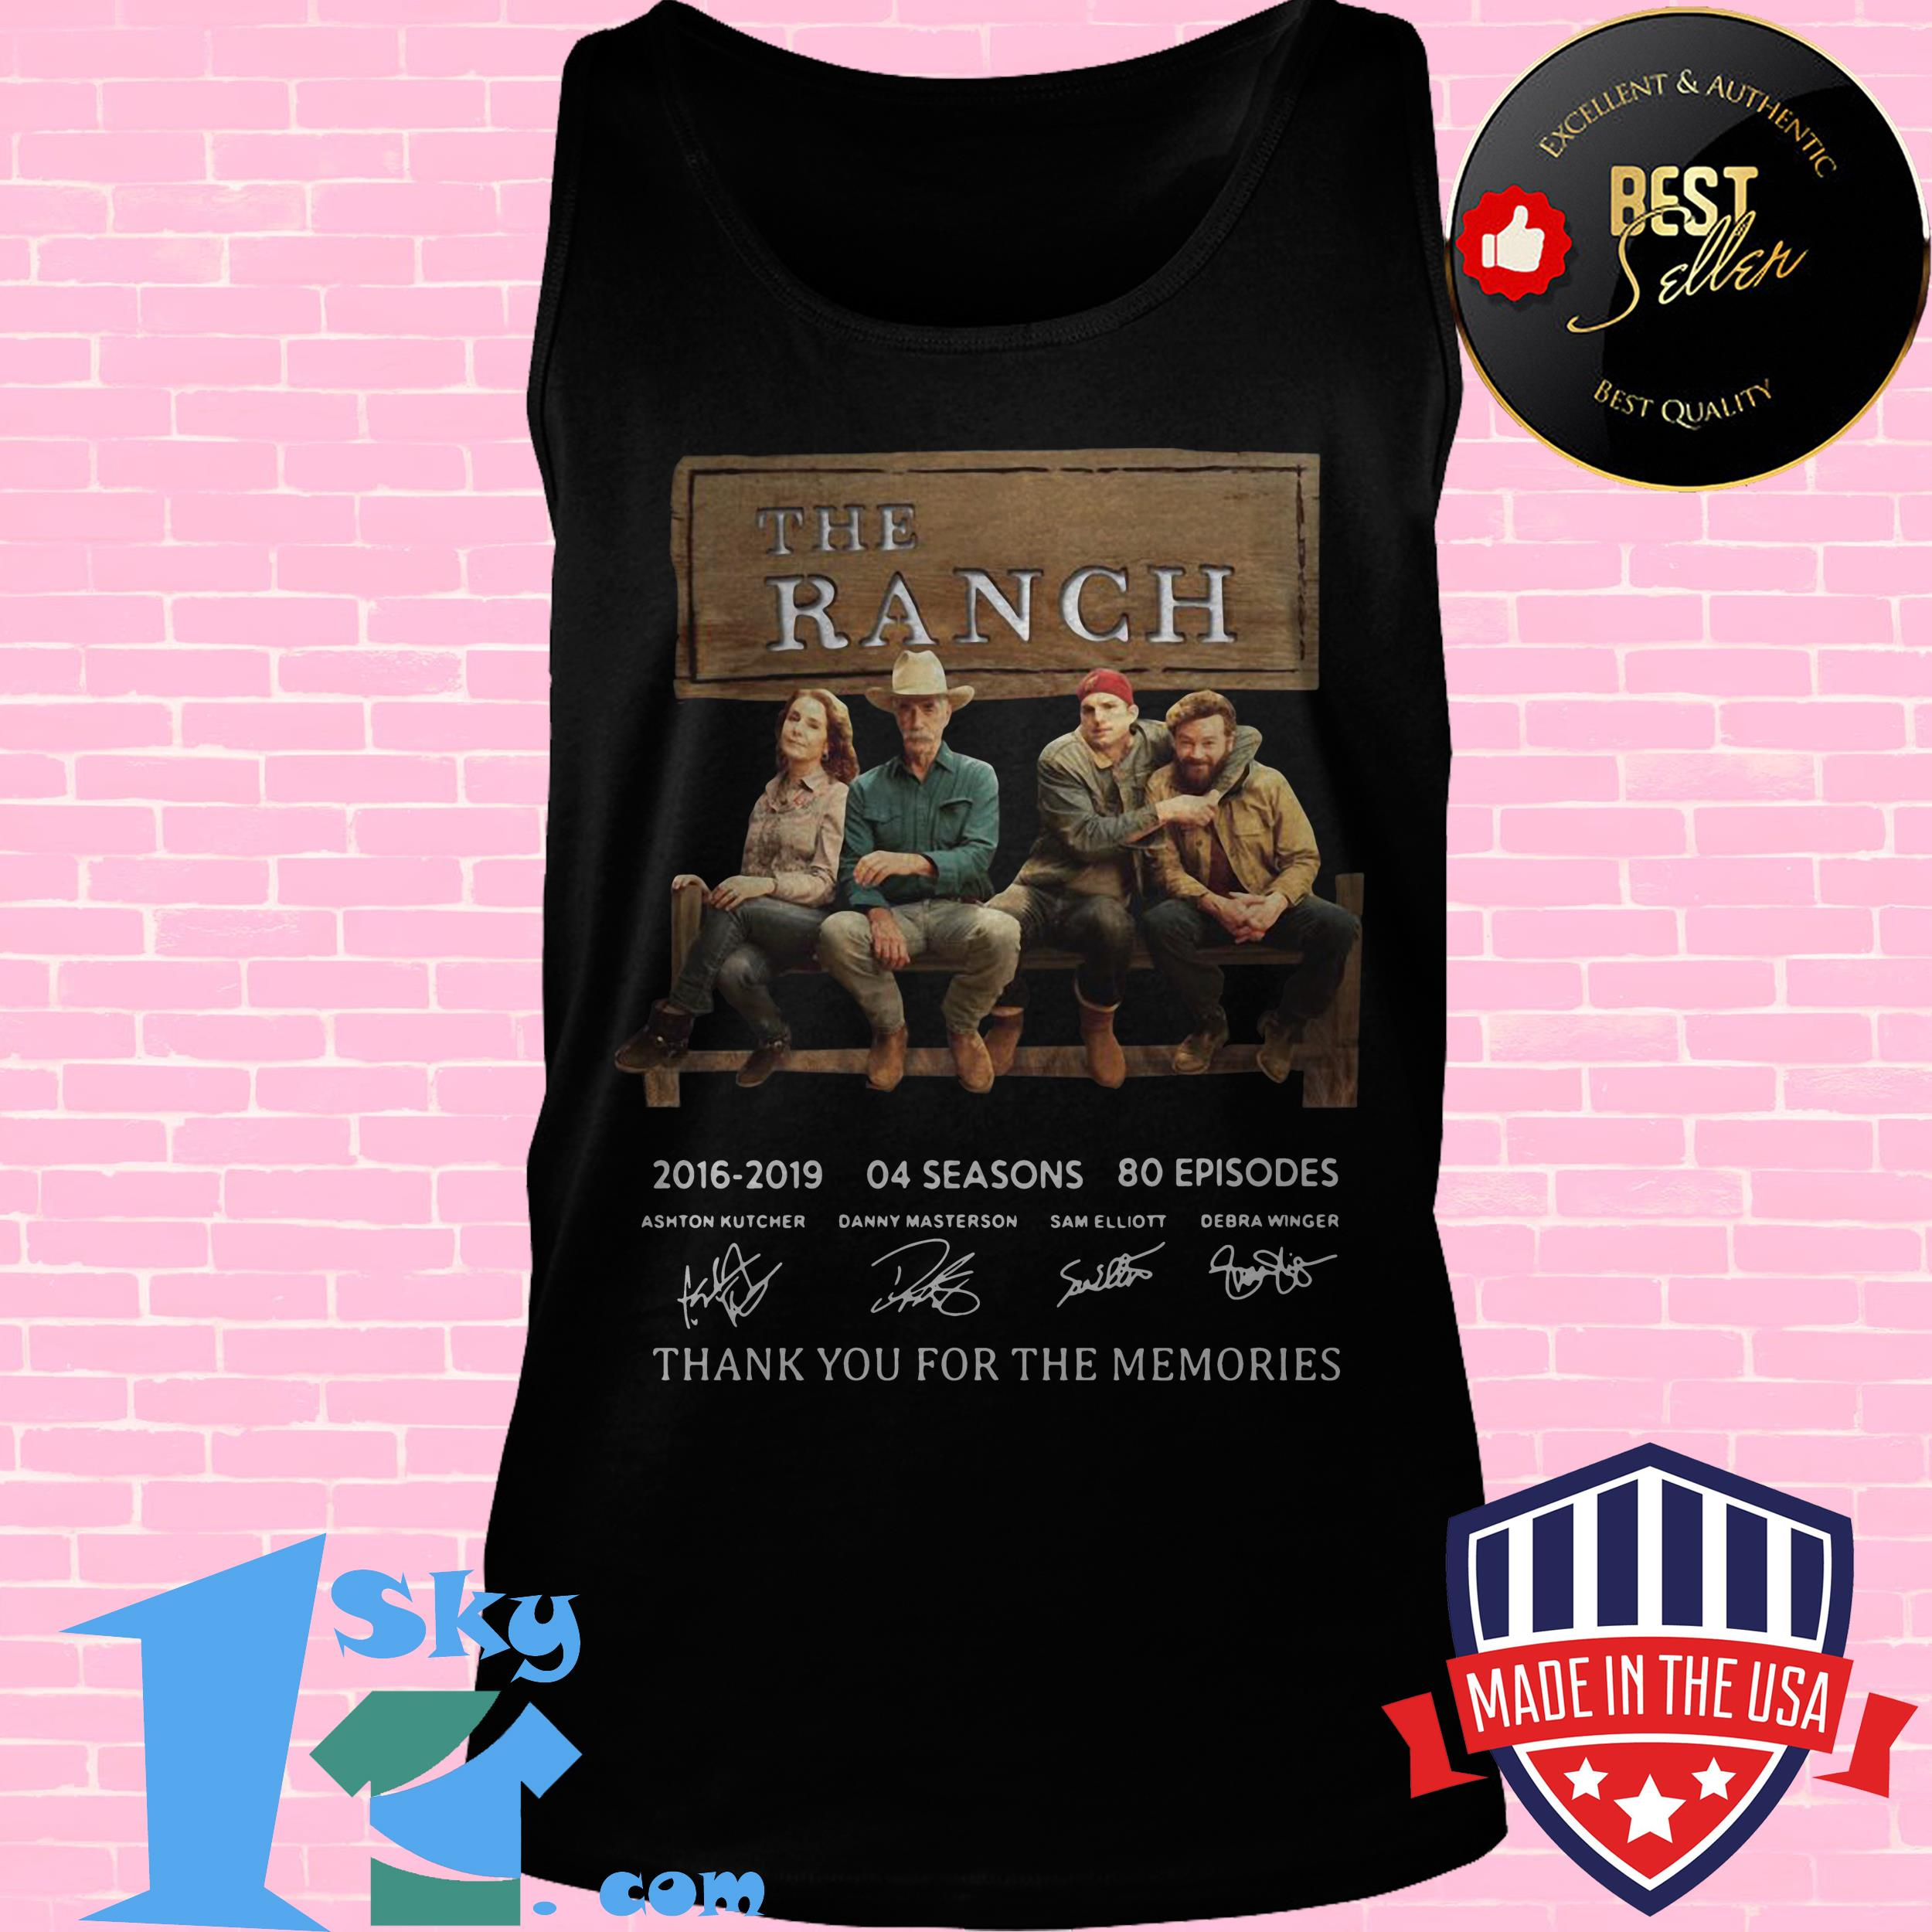 the ranch signature thank you for the memories tank top - The Ranch Signature Thank You For The Memories shirt